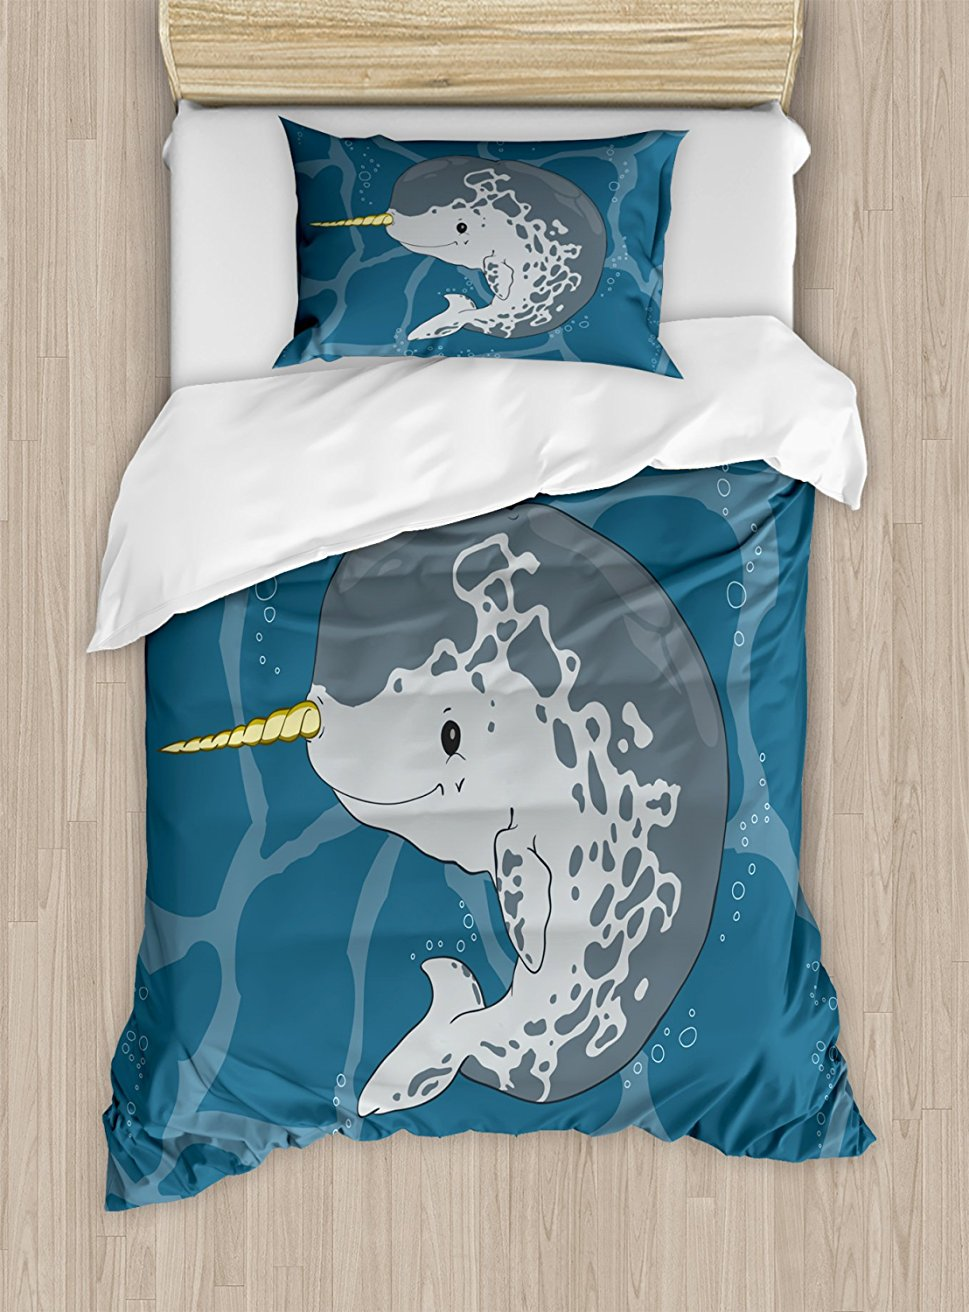 Home & Garden Narwhal Duvet Cover Set Happy Arctic Ocean Whale With Horn Swimming In The Sea Cartoon Style Animal Drawing 4pcs Bedding Set Bedding Sets